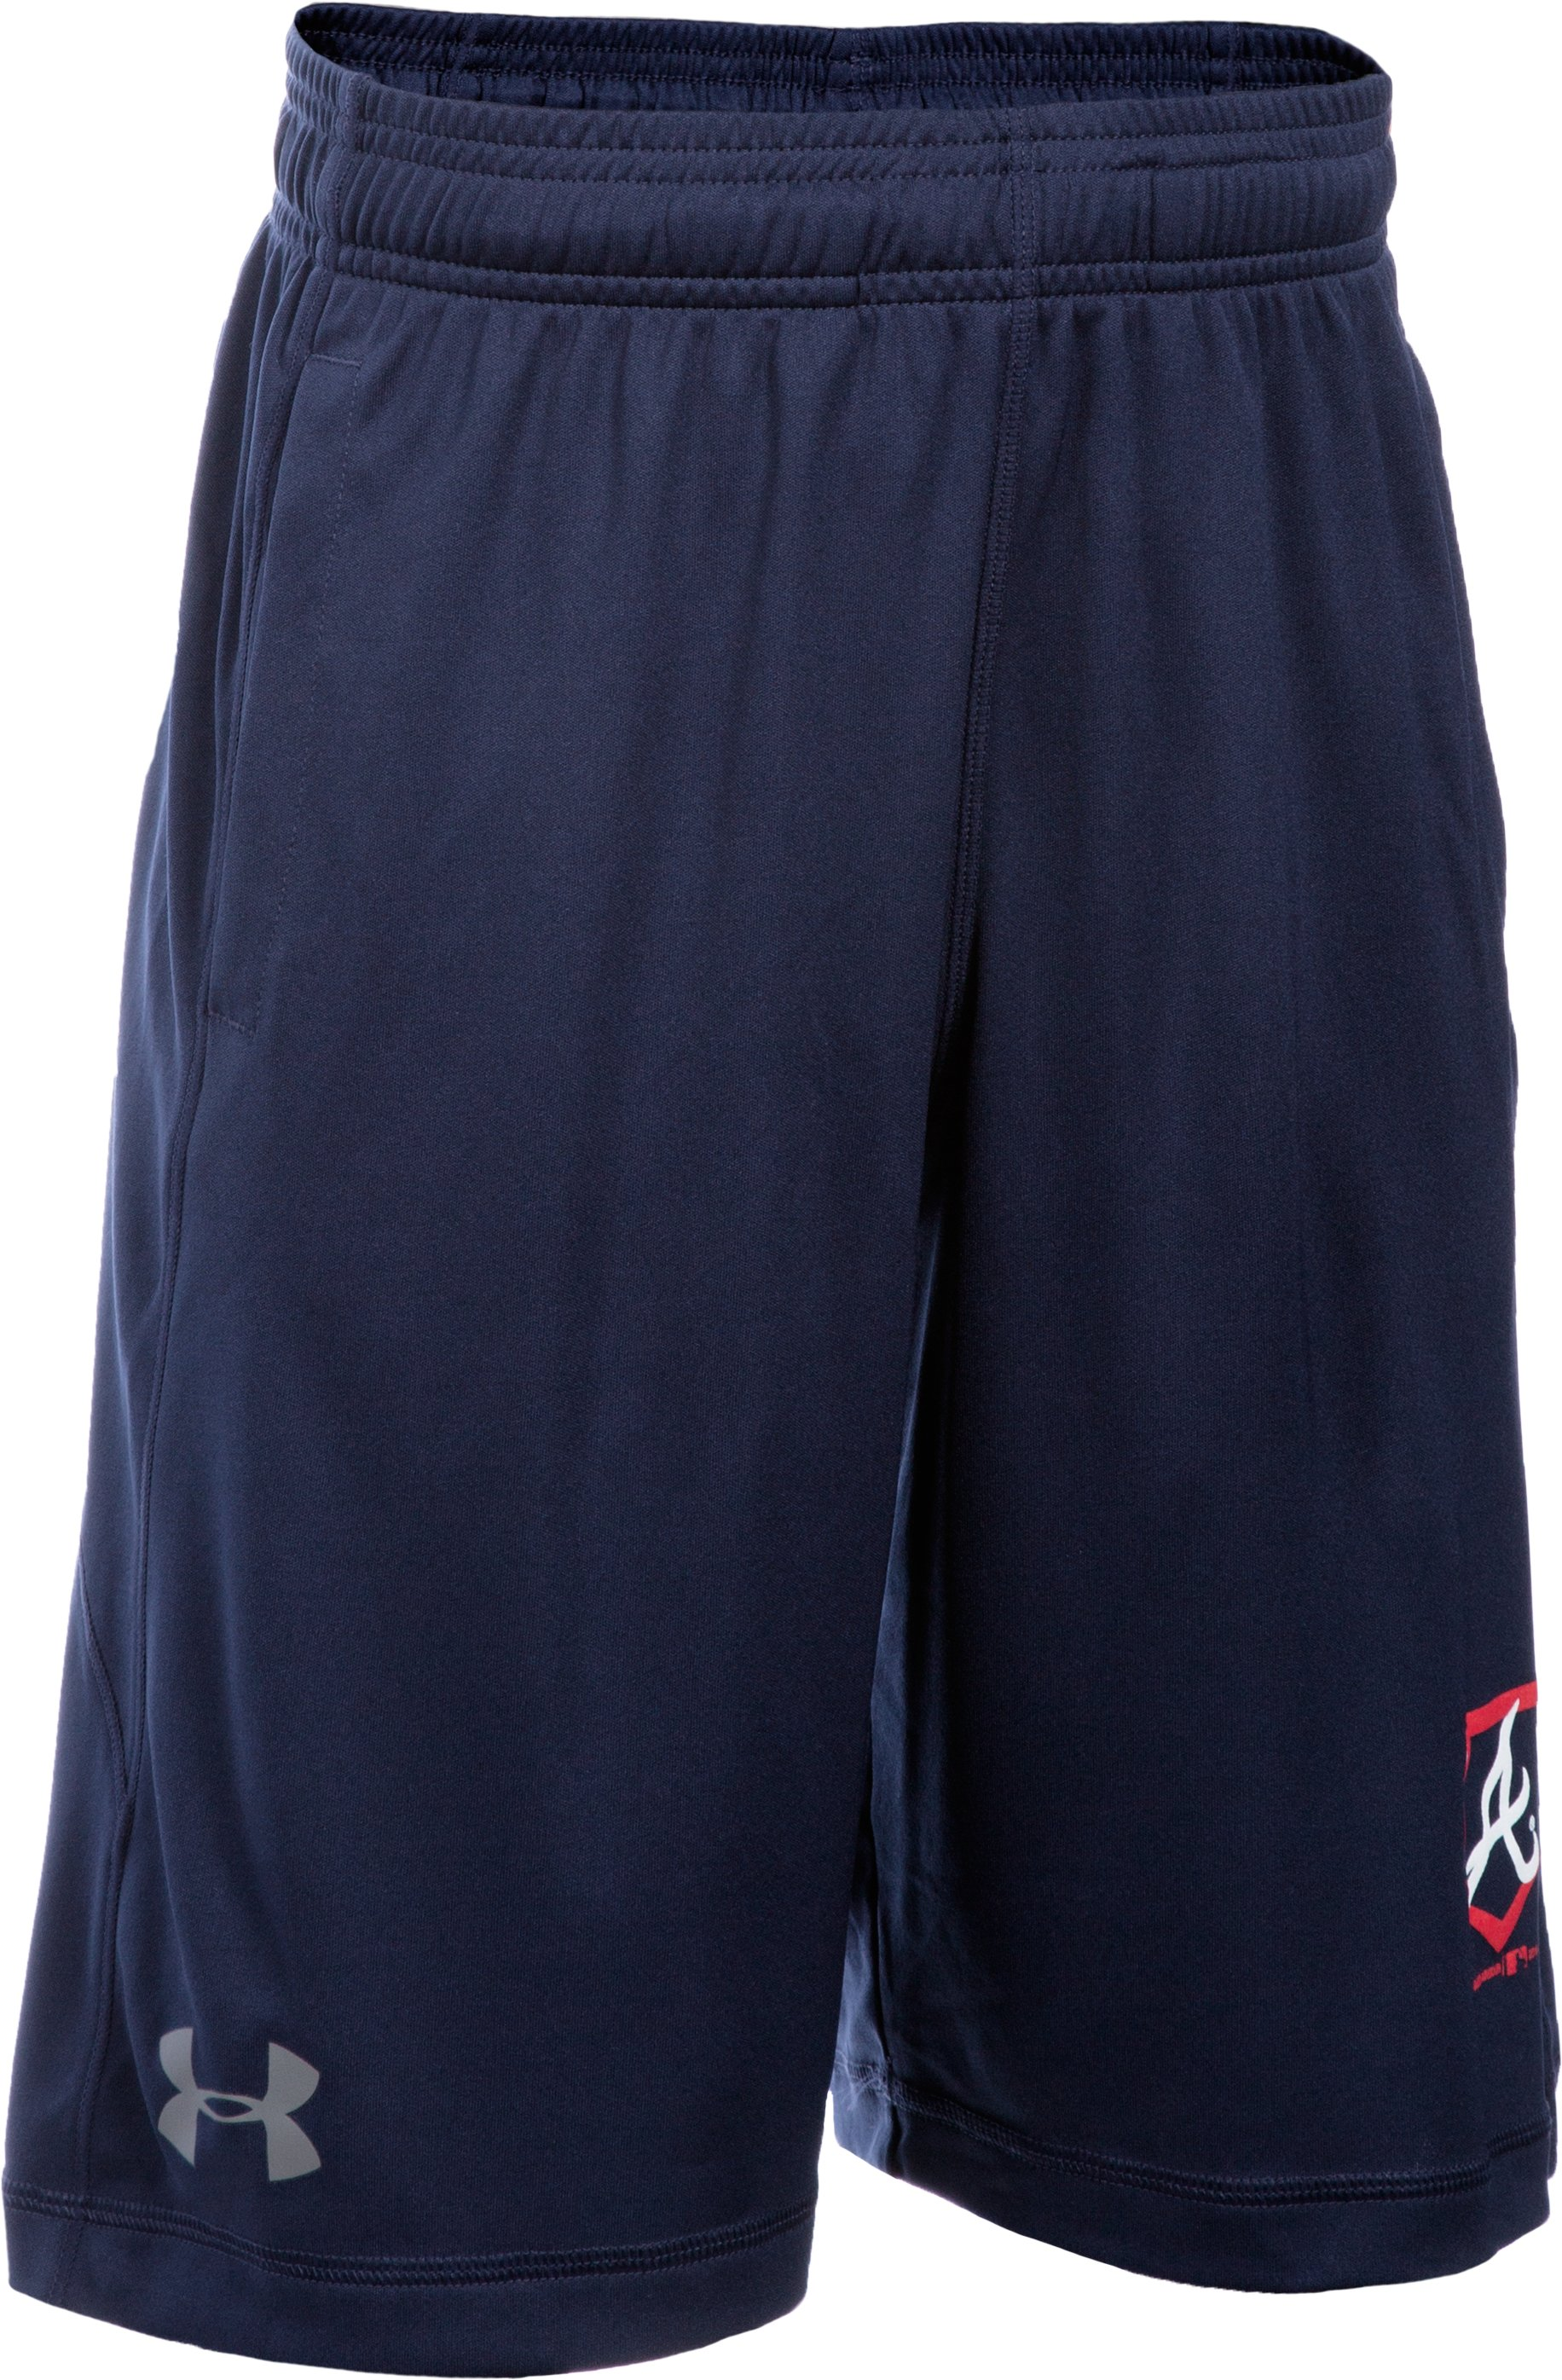 Boys' Atlanta Braves UA Raid Shorts, Midnight Navy